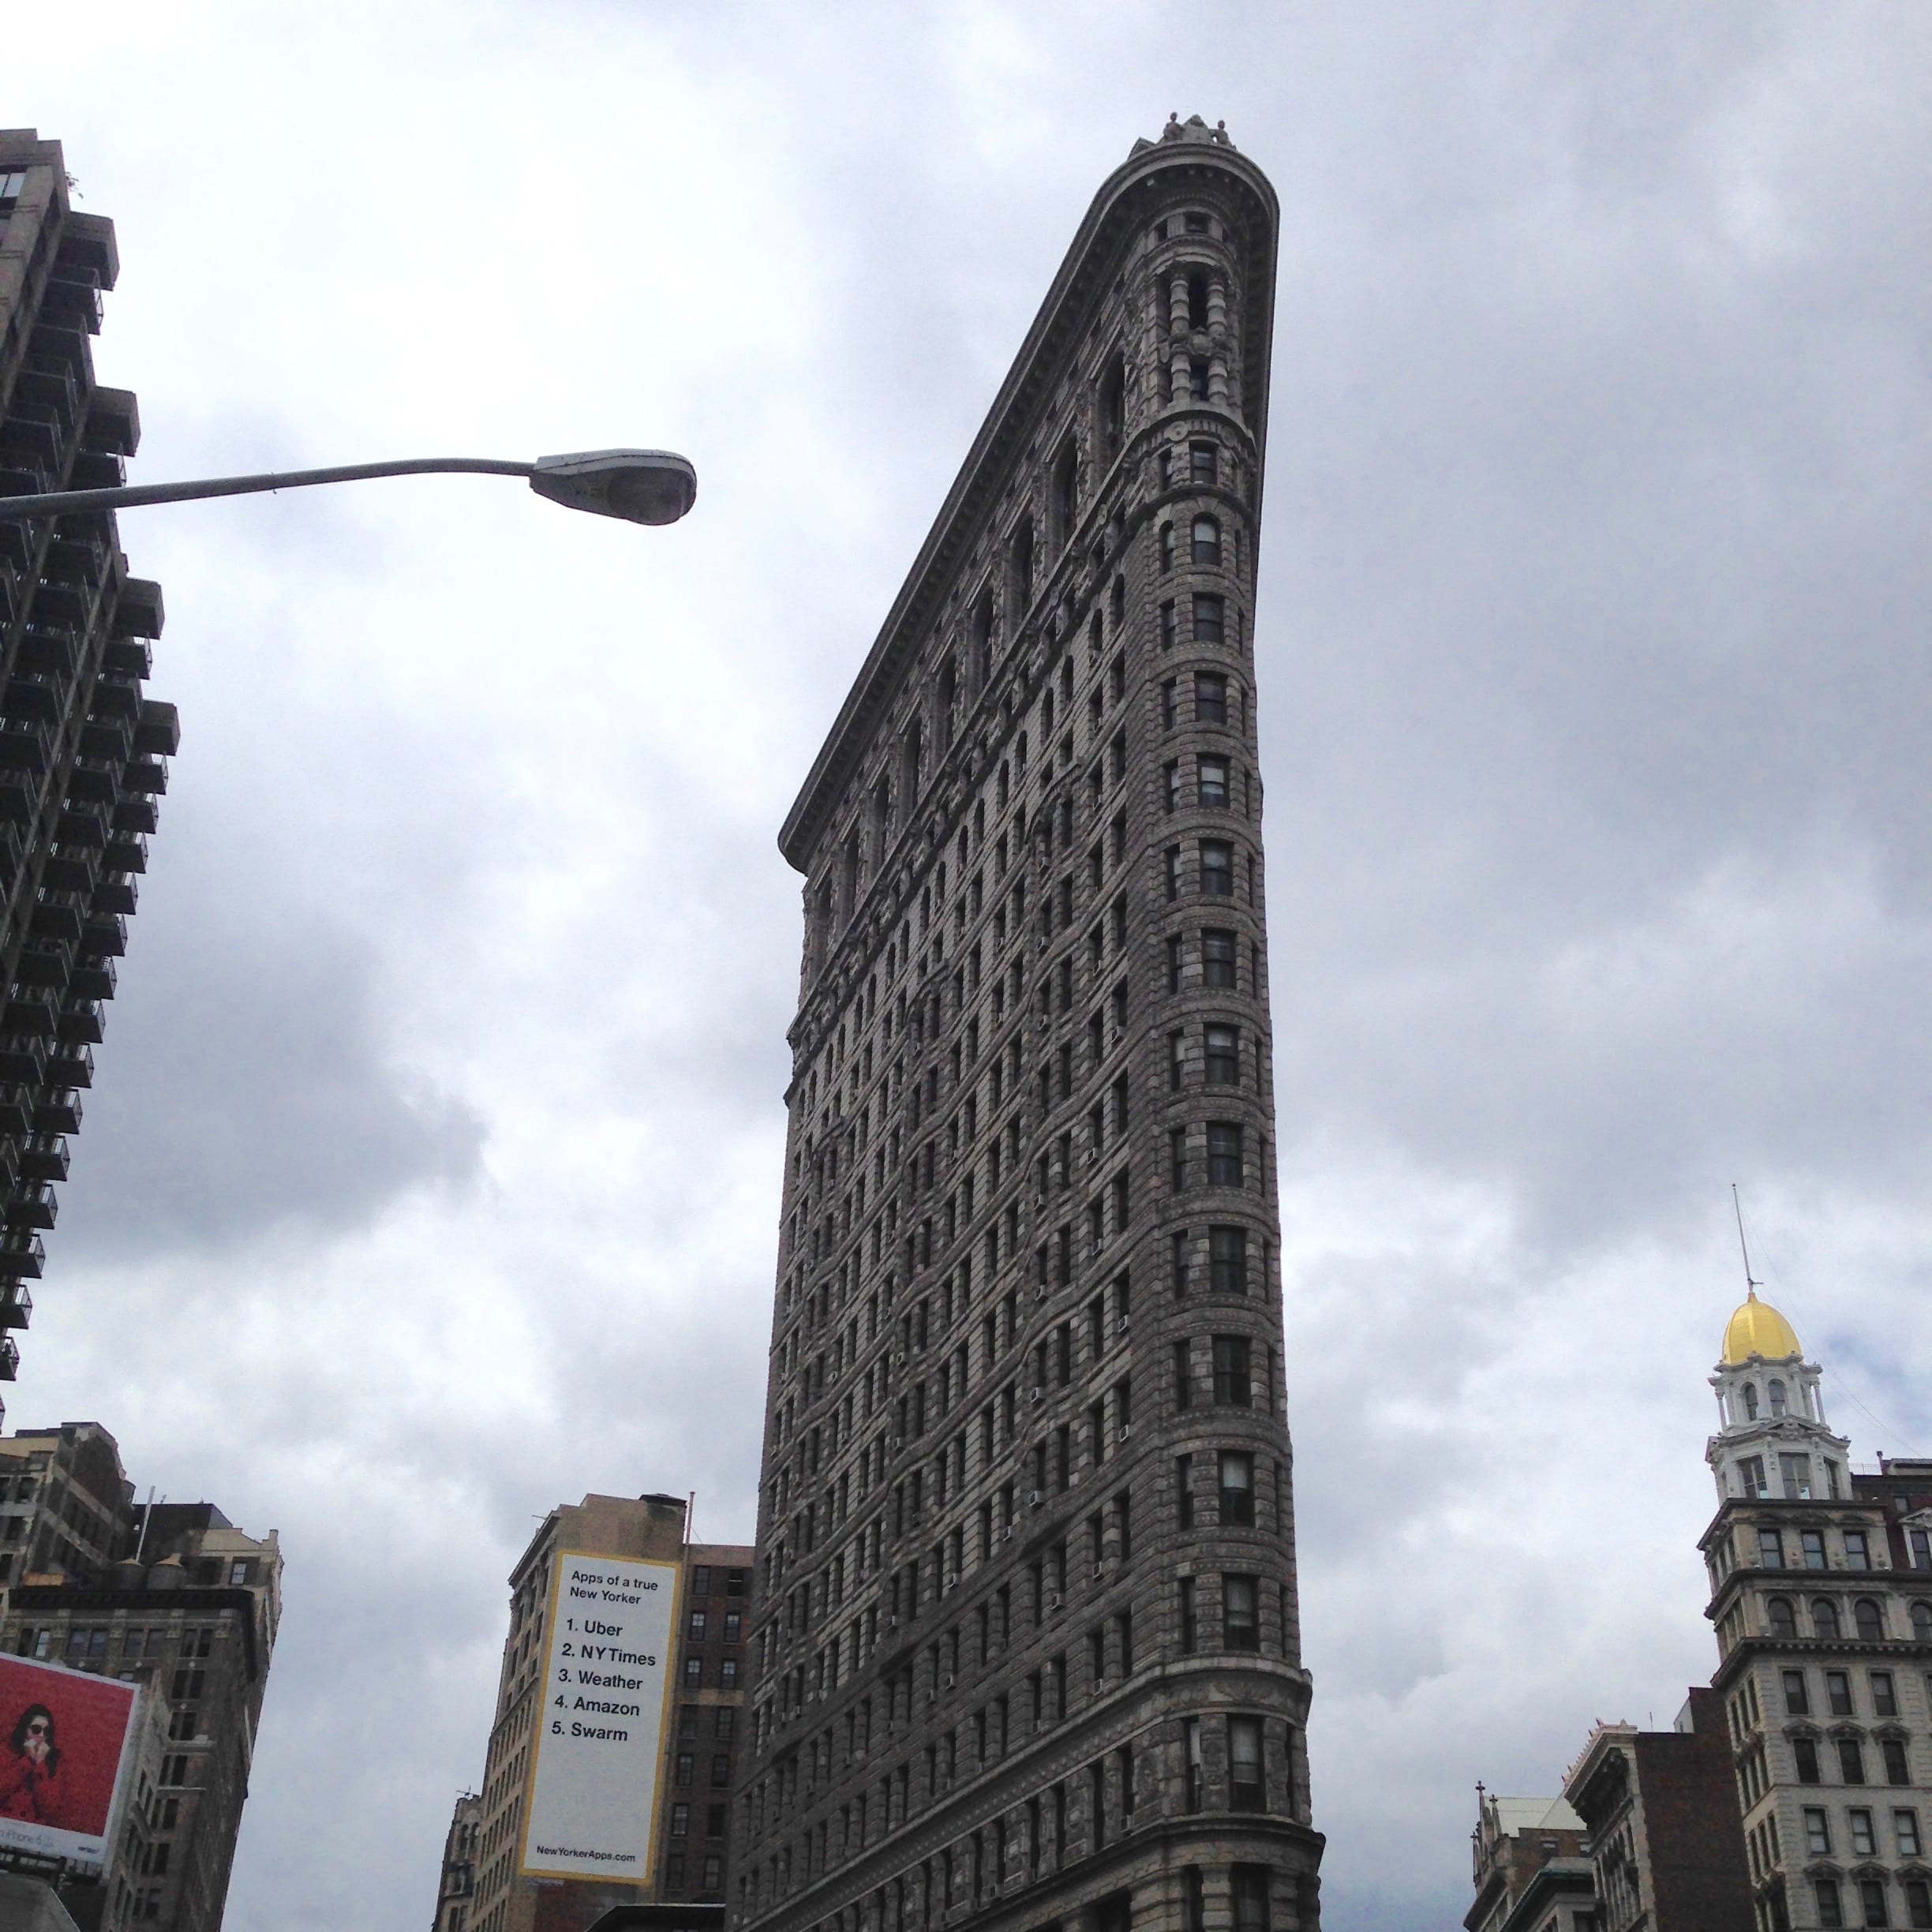 The Flatiron Building, home of Macmillan Children's Publishing Group